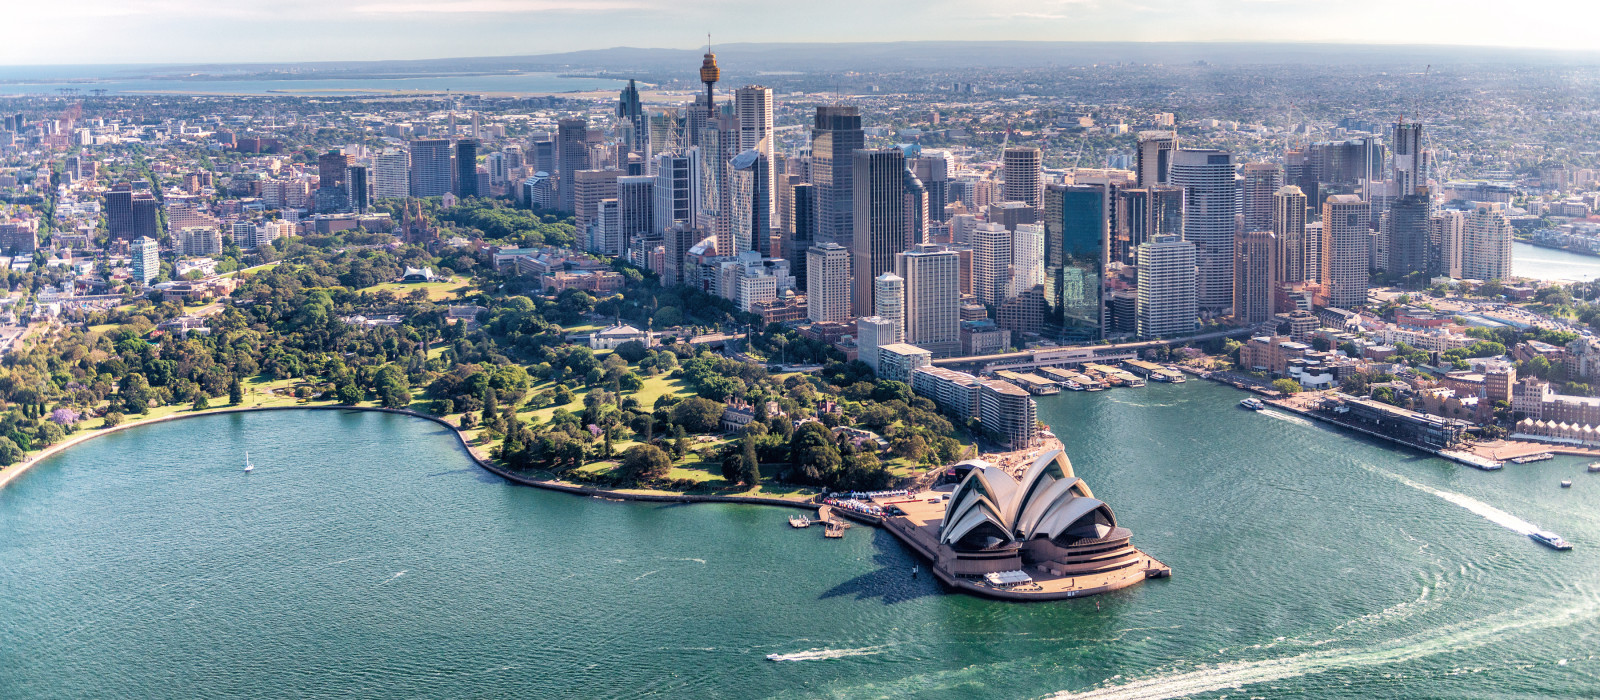 Sydney, Australia. Awesome aerial view from helicopter on a beautiful day